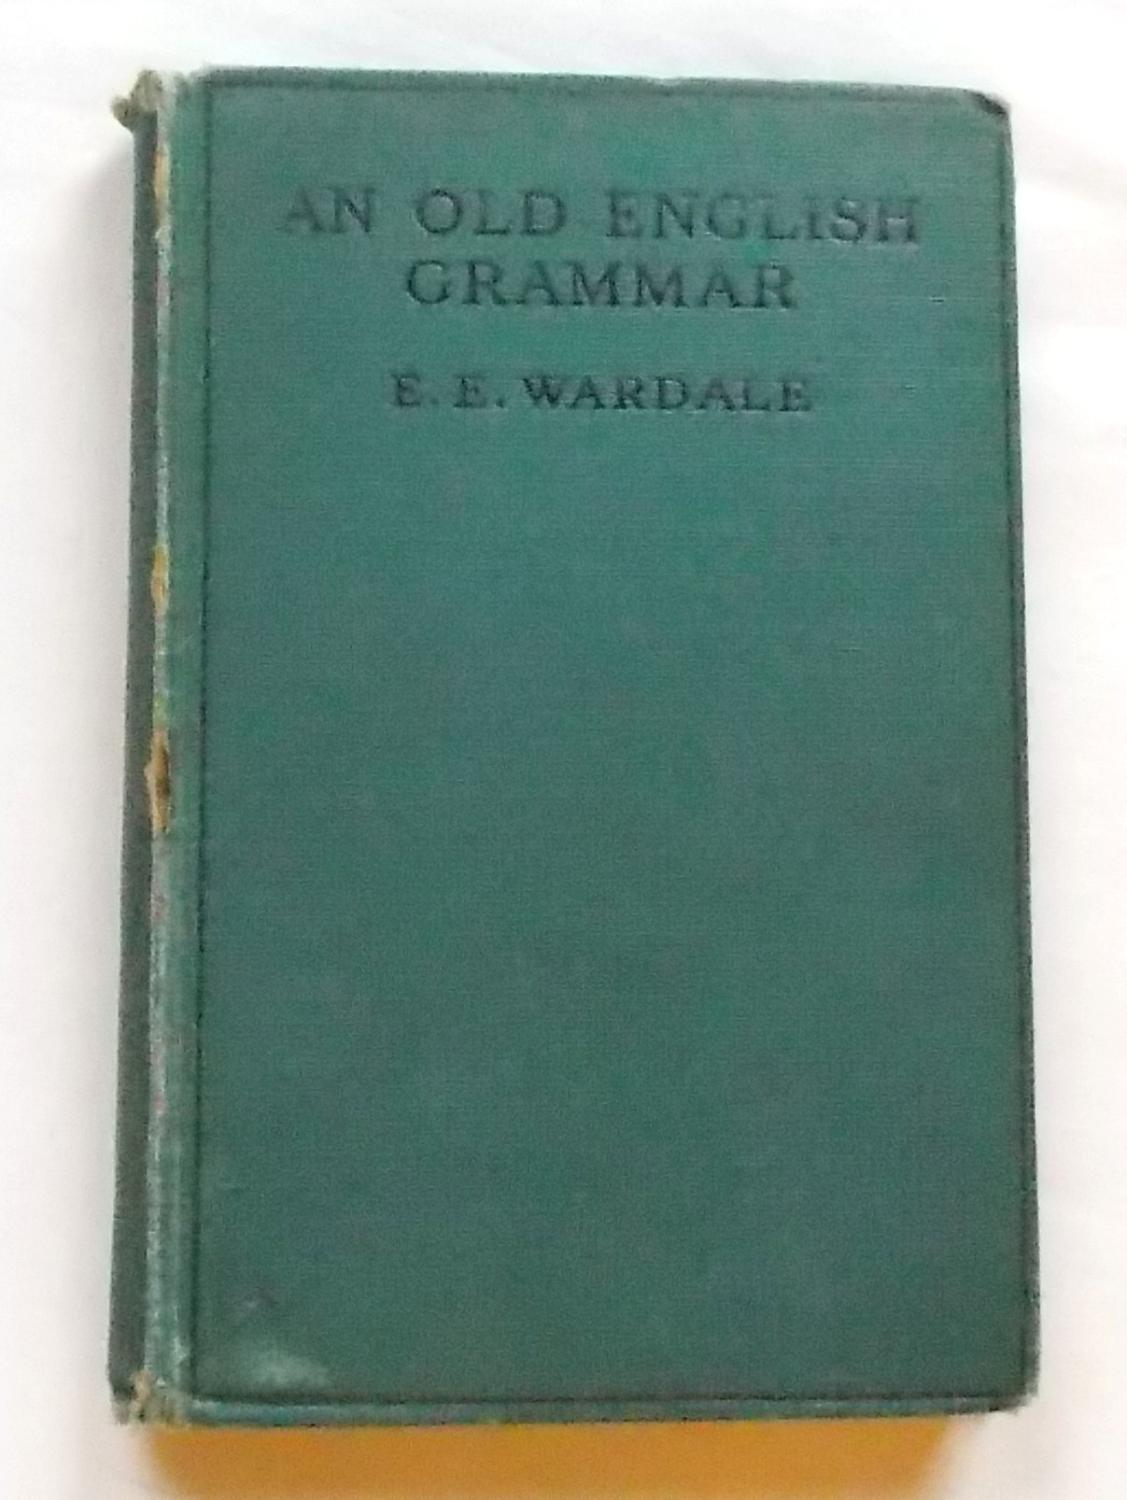 An Old English Grammar Second Edition